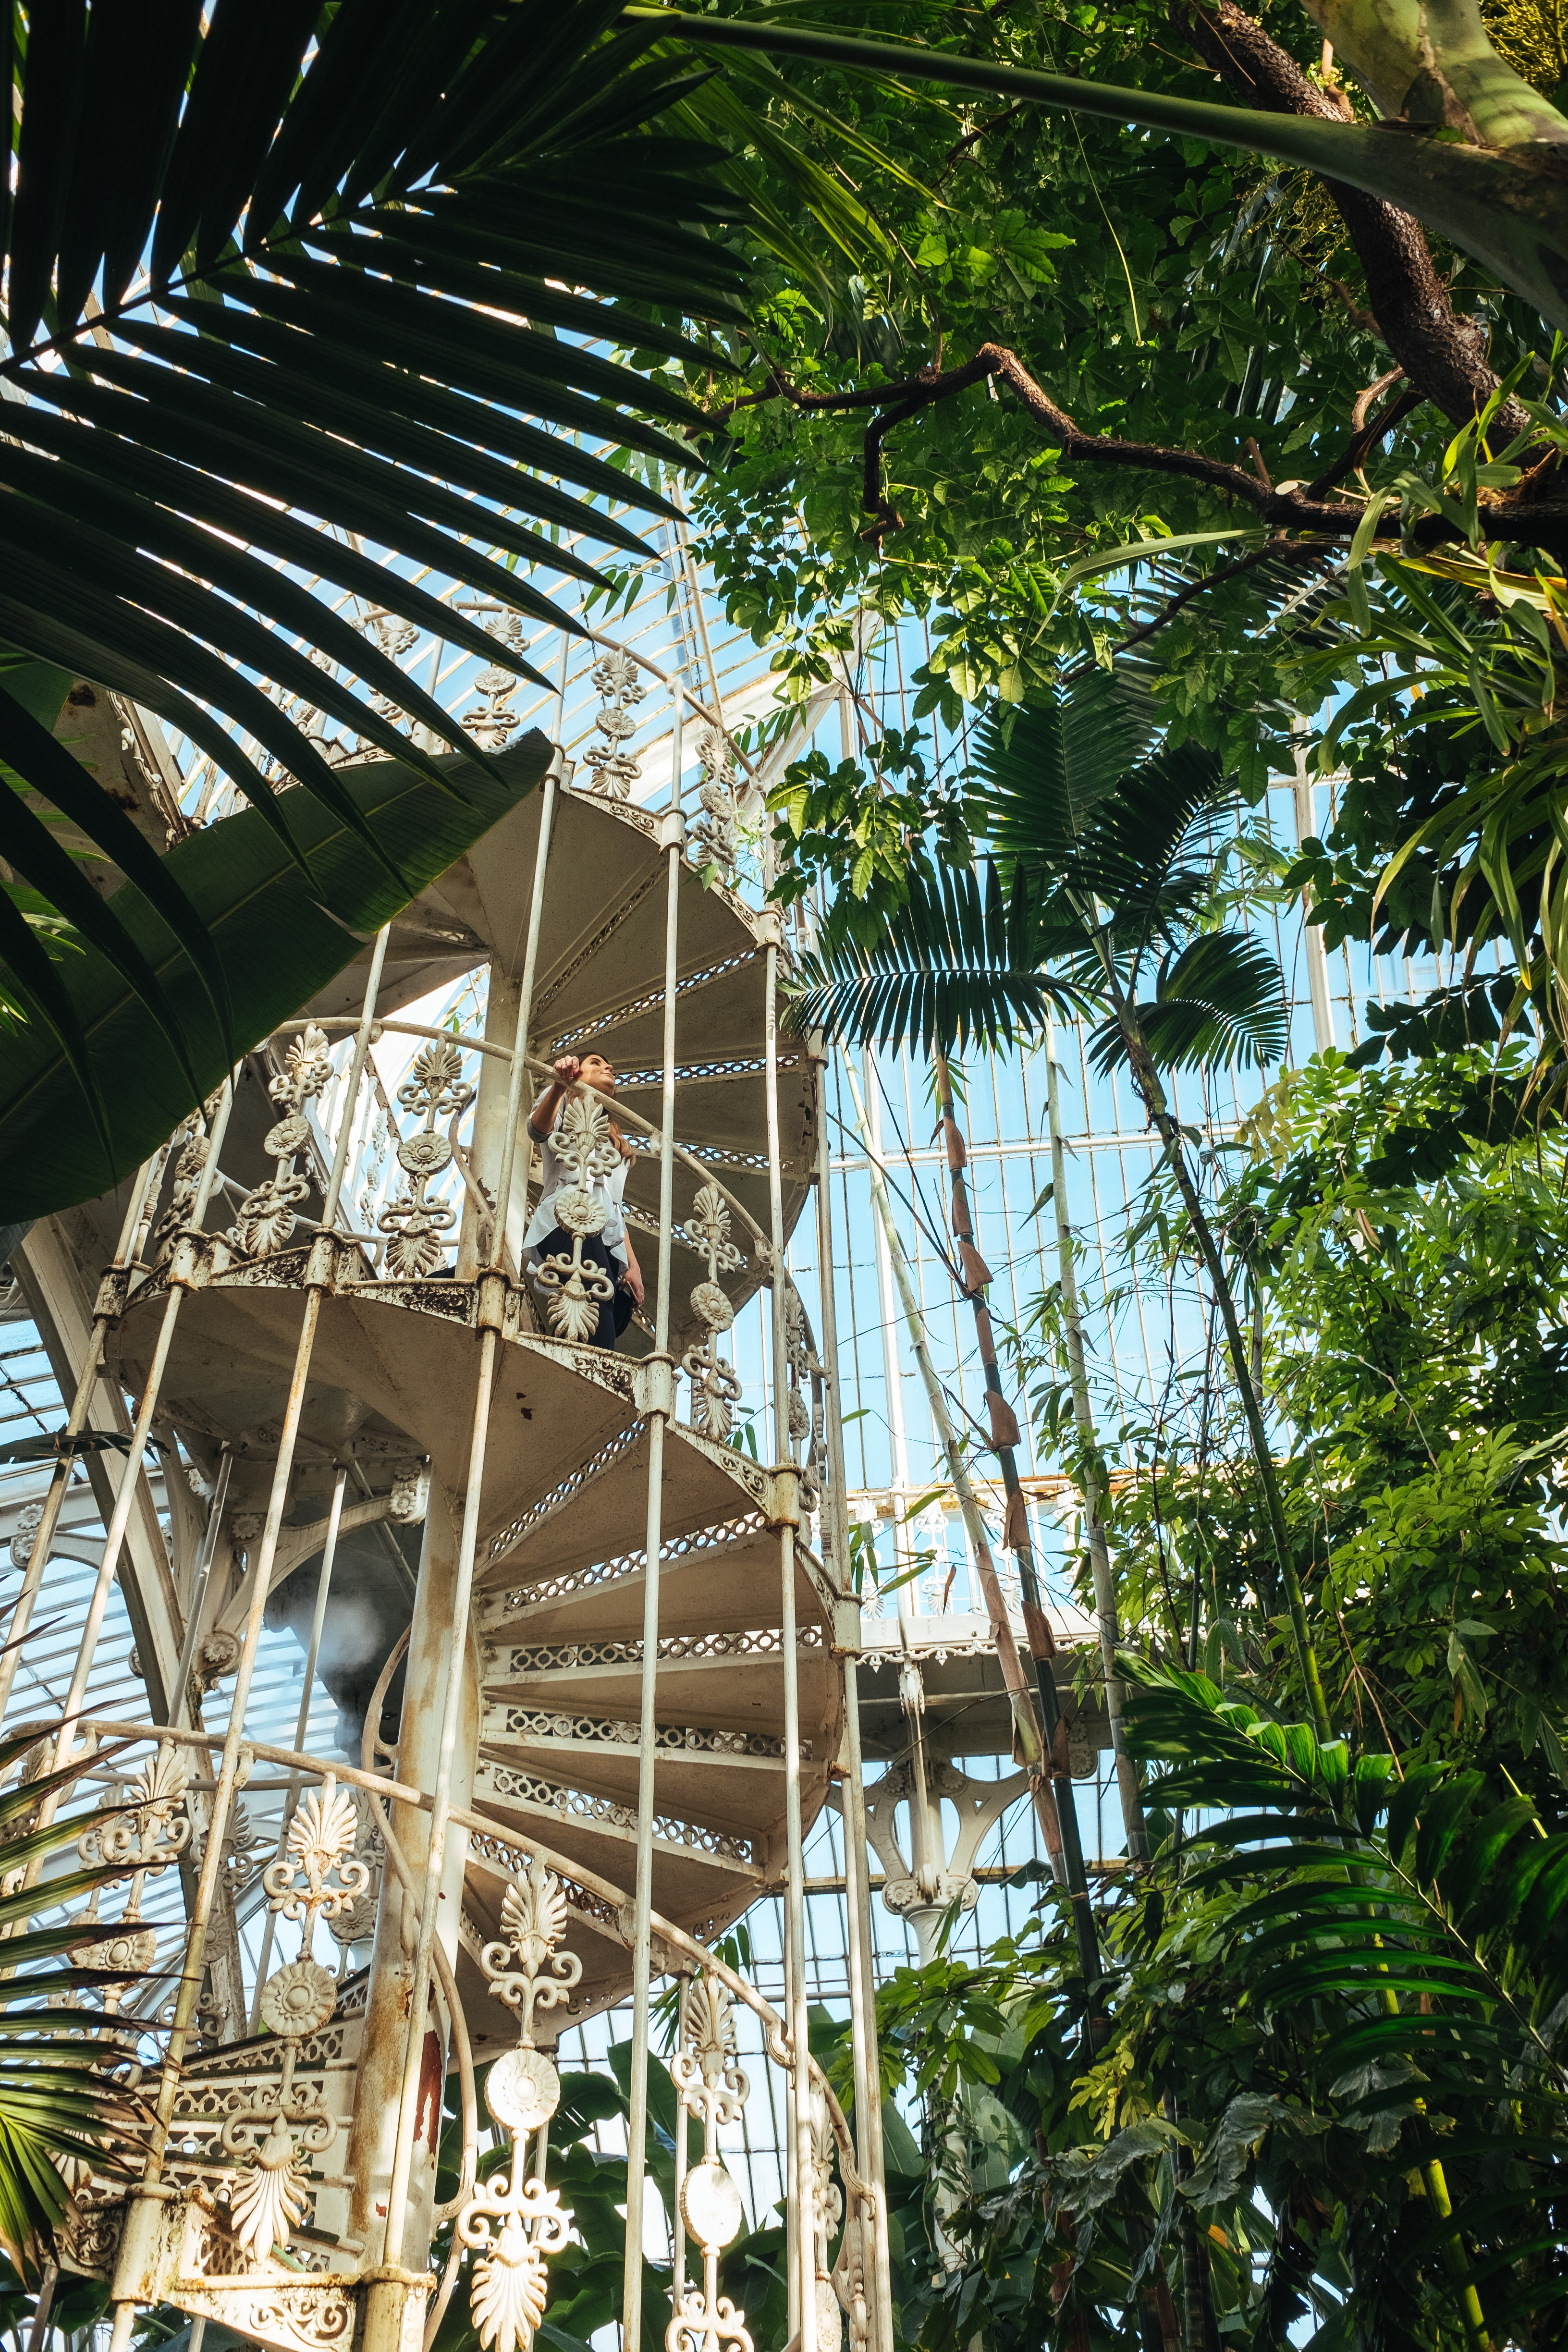 The History & Highlights of Kew Gardens